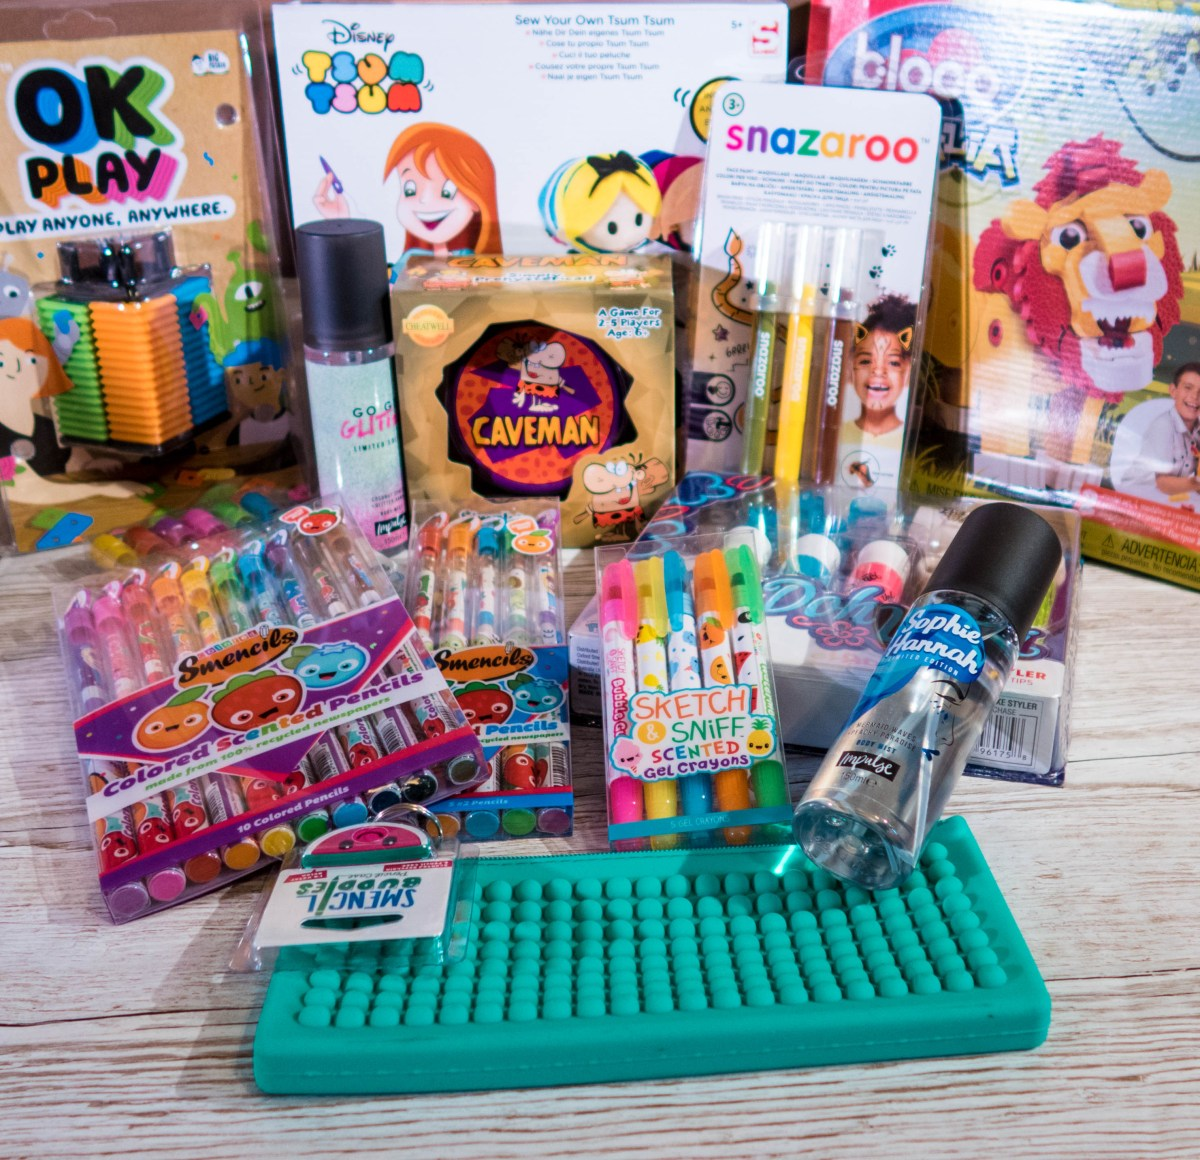 WIN! A Big Bundle of Kids' Stuff in Time for Christmas! WORTH OVER £120!